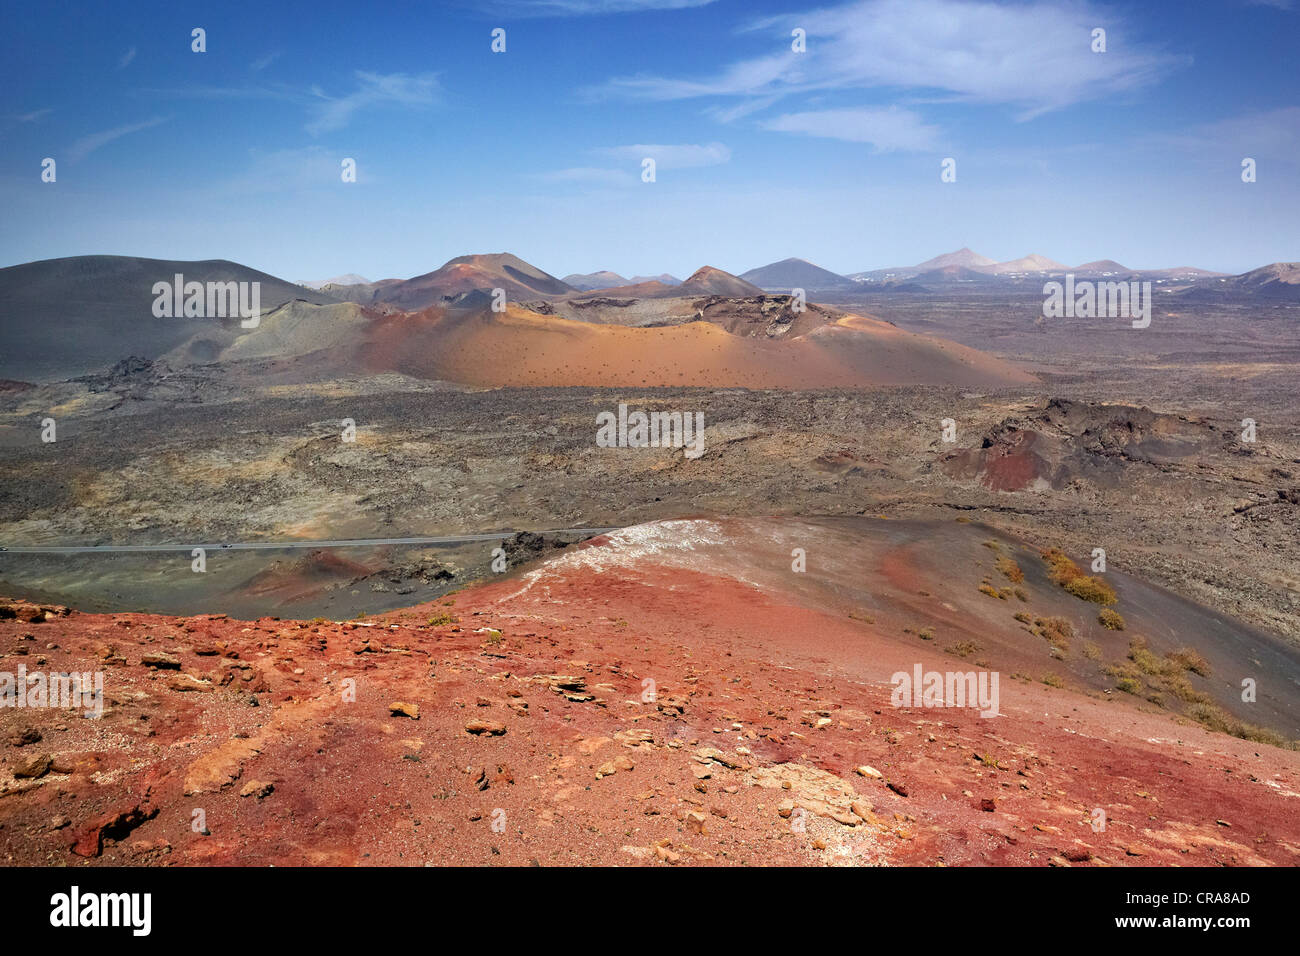 Timanfaya National Park, Lanzarote, Canary Islands, Spain - Stock Image